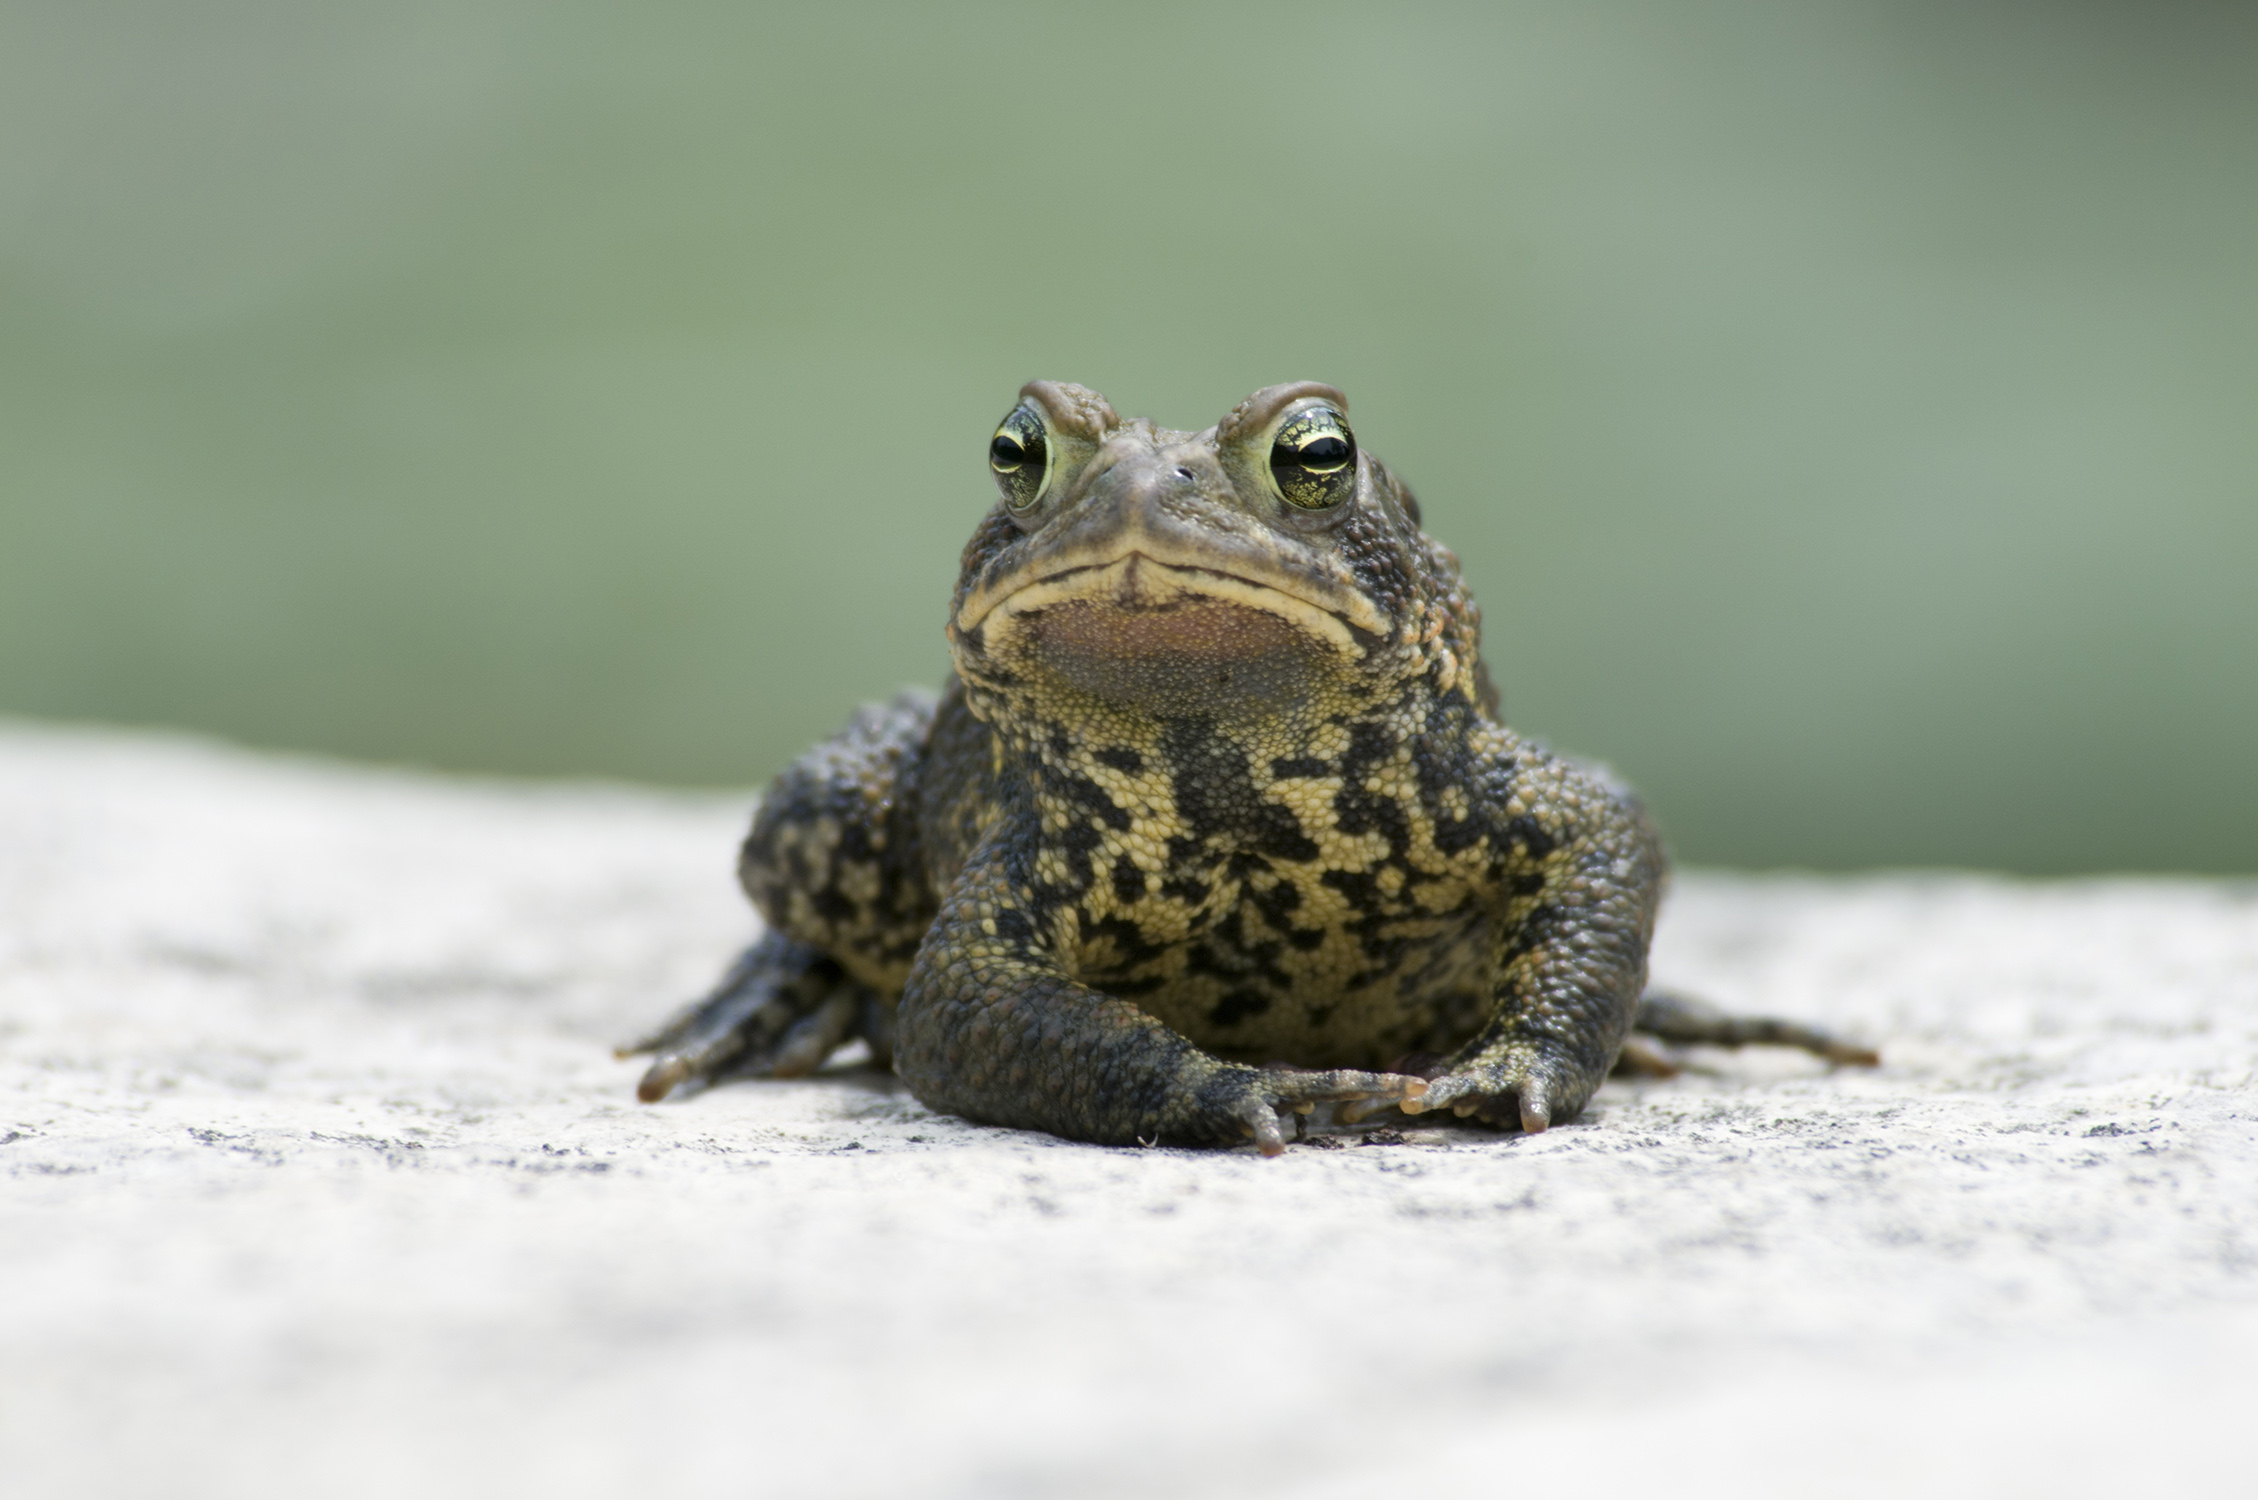 PHOTO: female toad looking directly at the camera